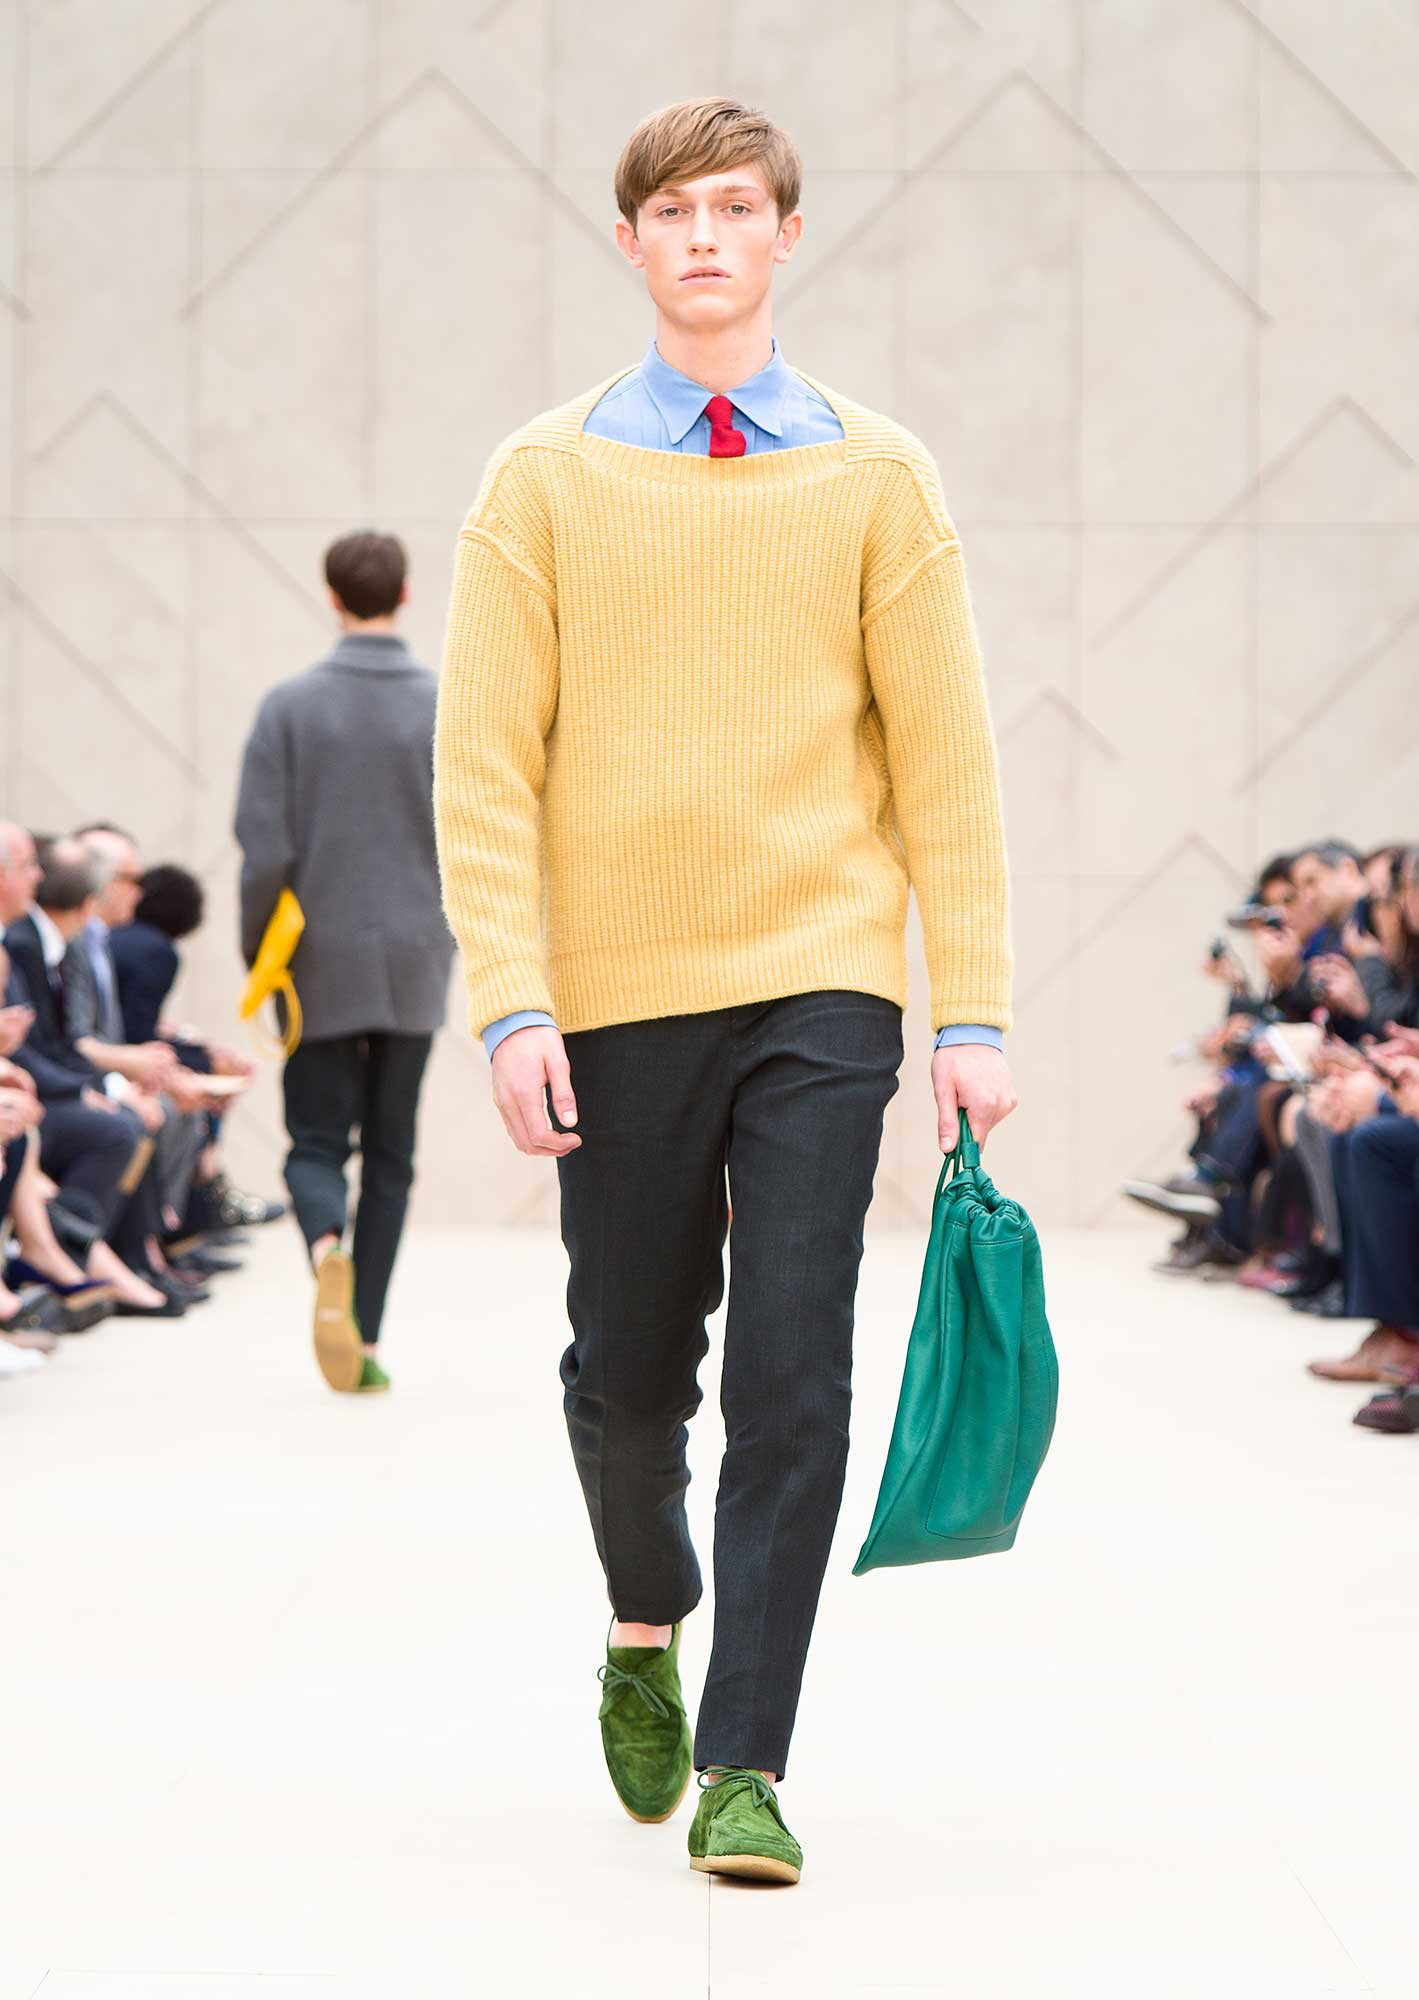 Burberry Prorsum Menswear: SS13 Collection recommendations